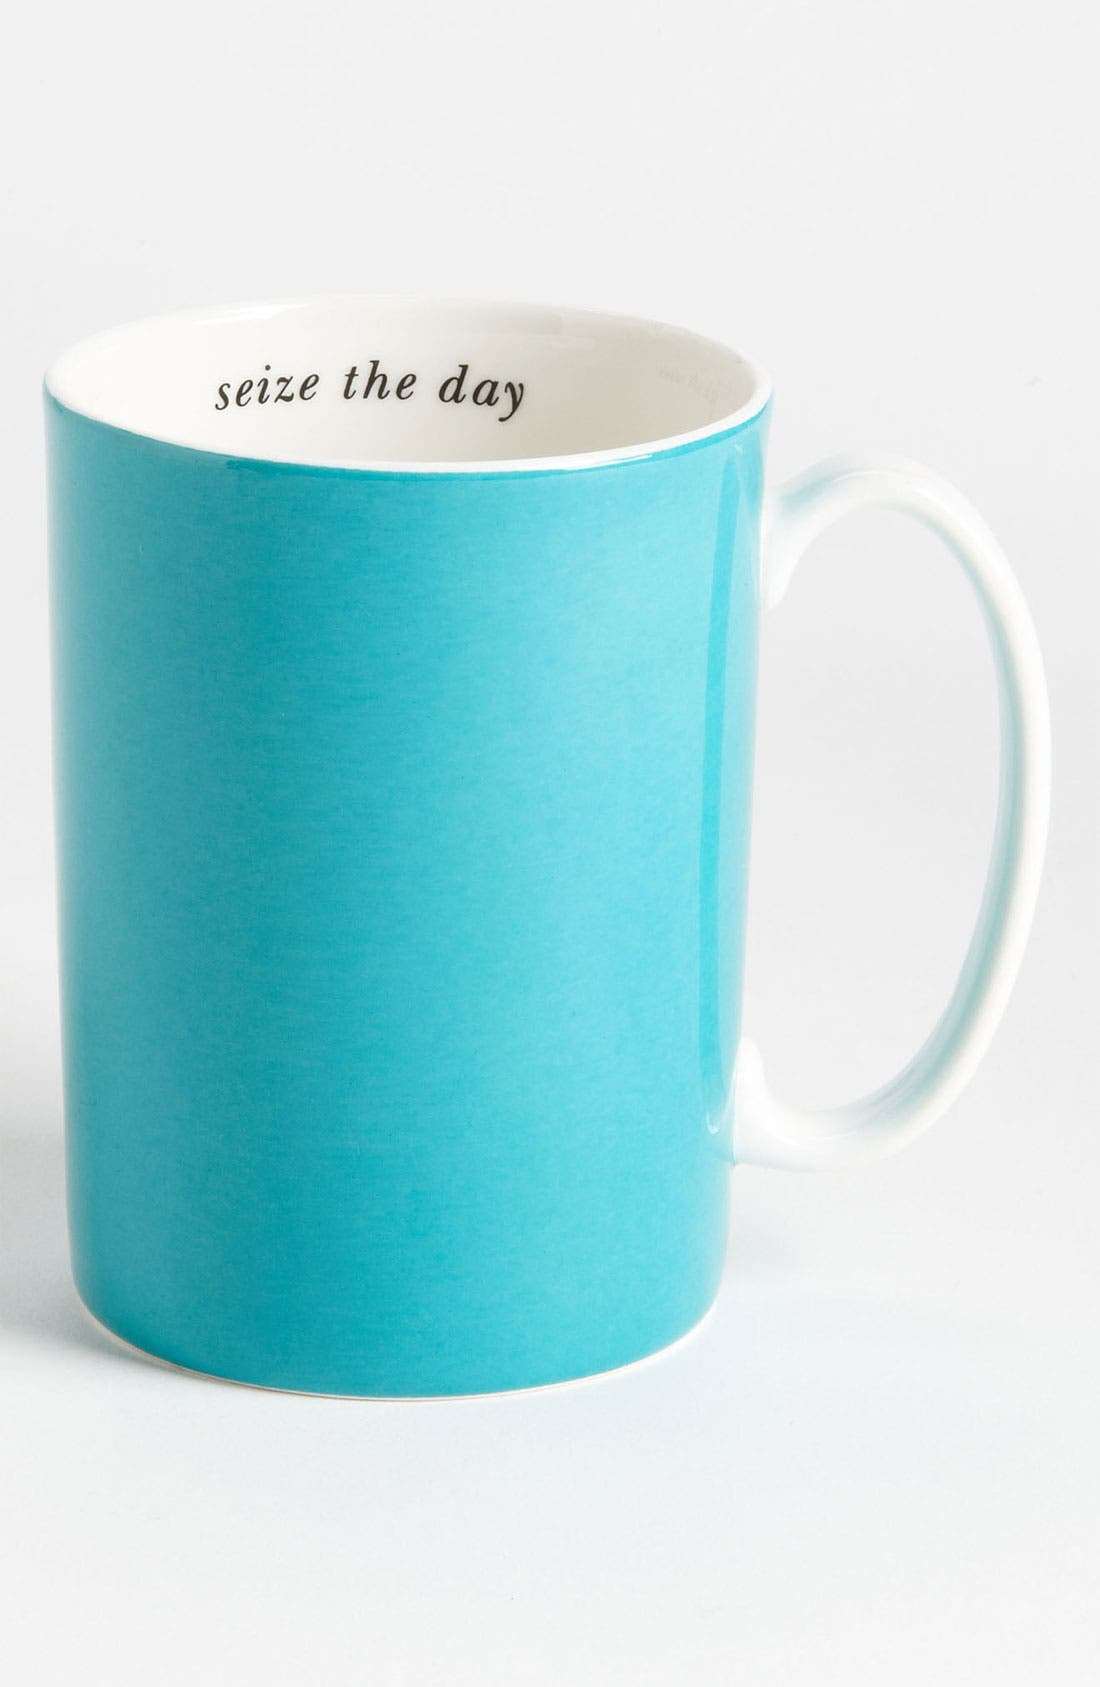 Alternate Image 1 Selected - kate spade new york 'say the word - seize the day' porcelain mug